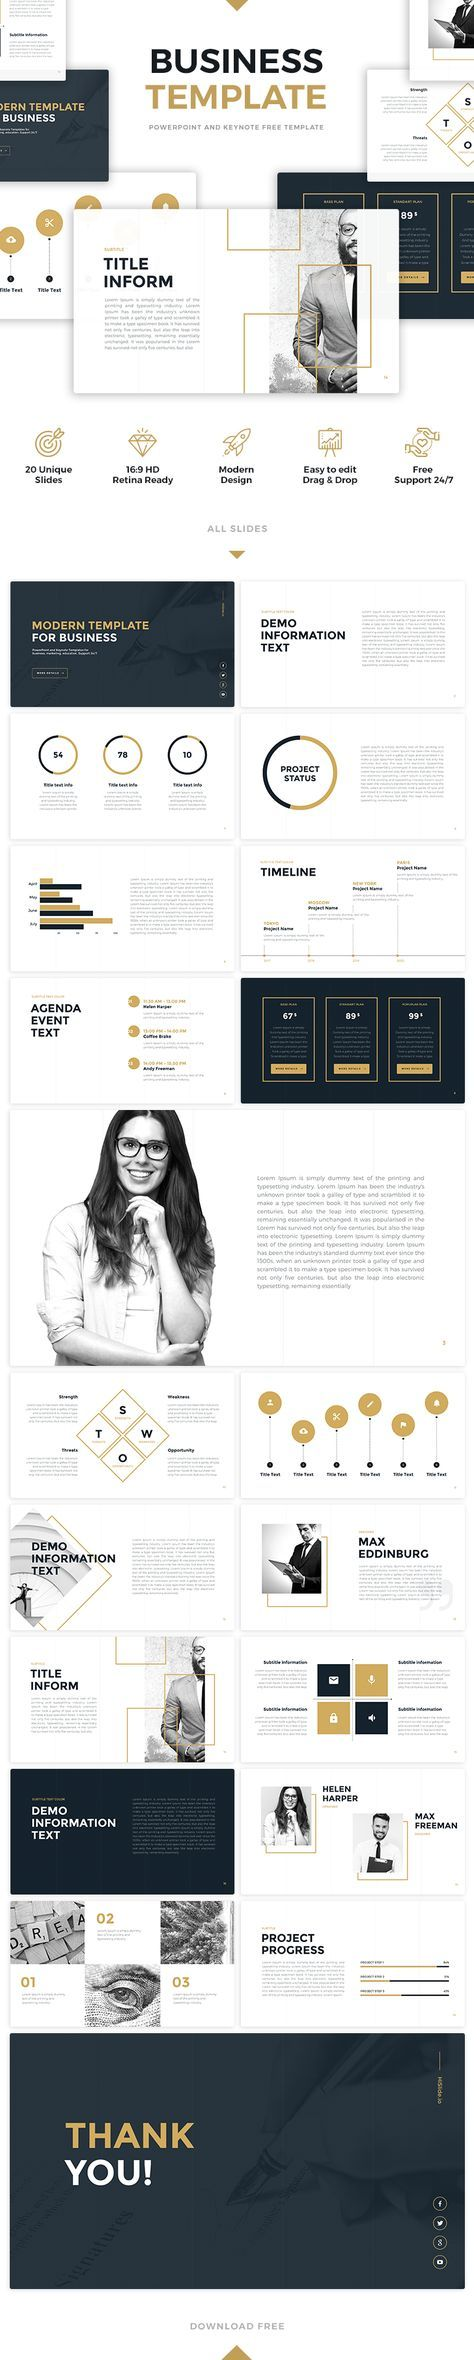 Free Download artBusiness Template for PowerPoint or